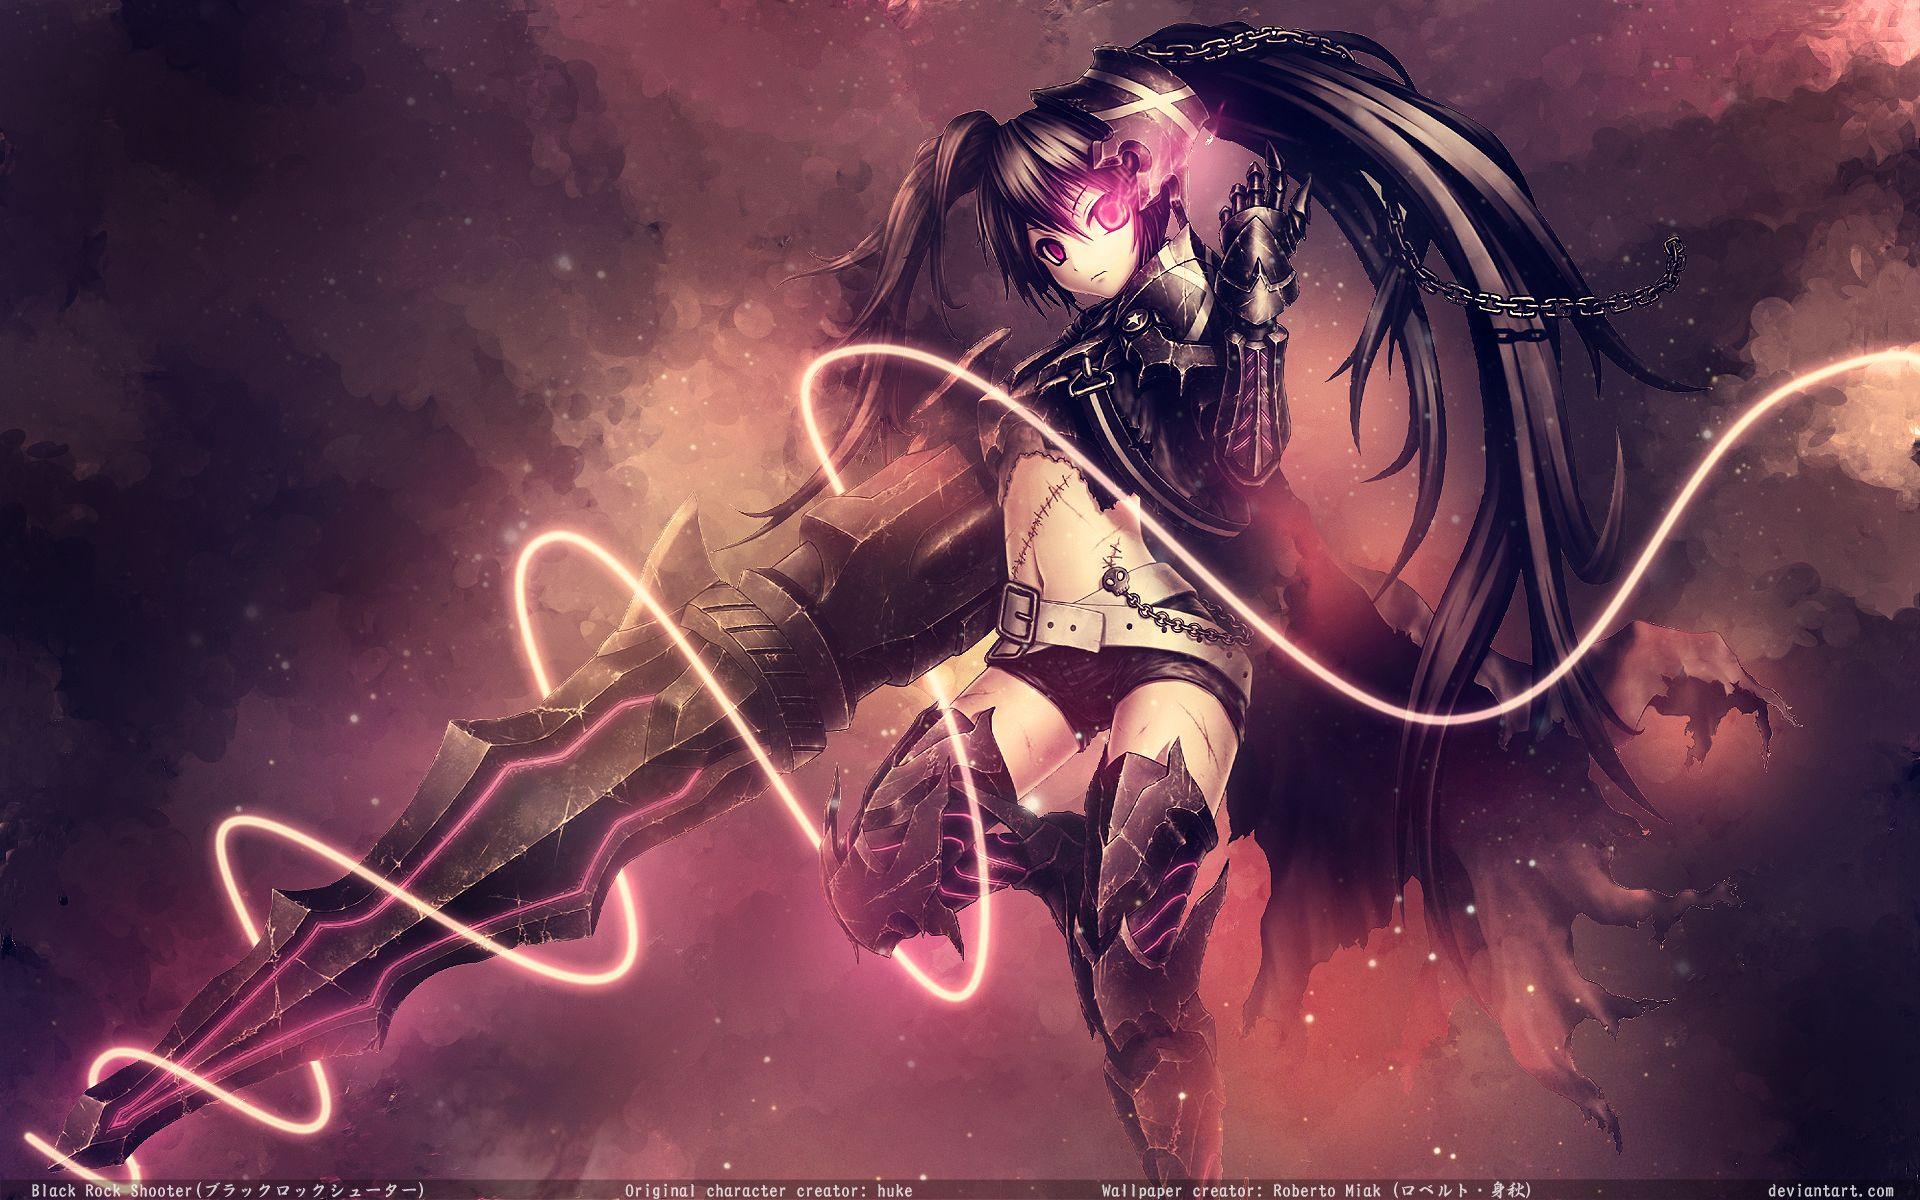 Wallpapers De Anime Full Hd Parte 1 1080p Megapost Taringa Black Rock Shooter Black Rock Anime Wallpaper